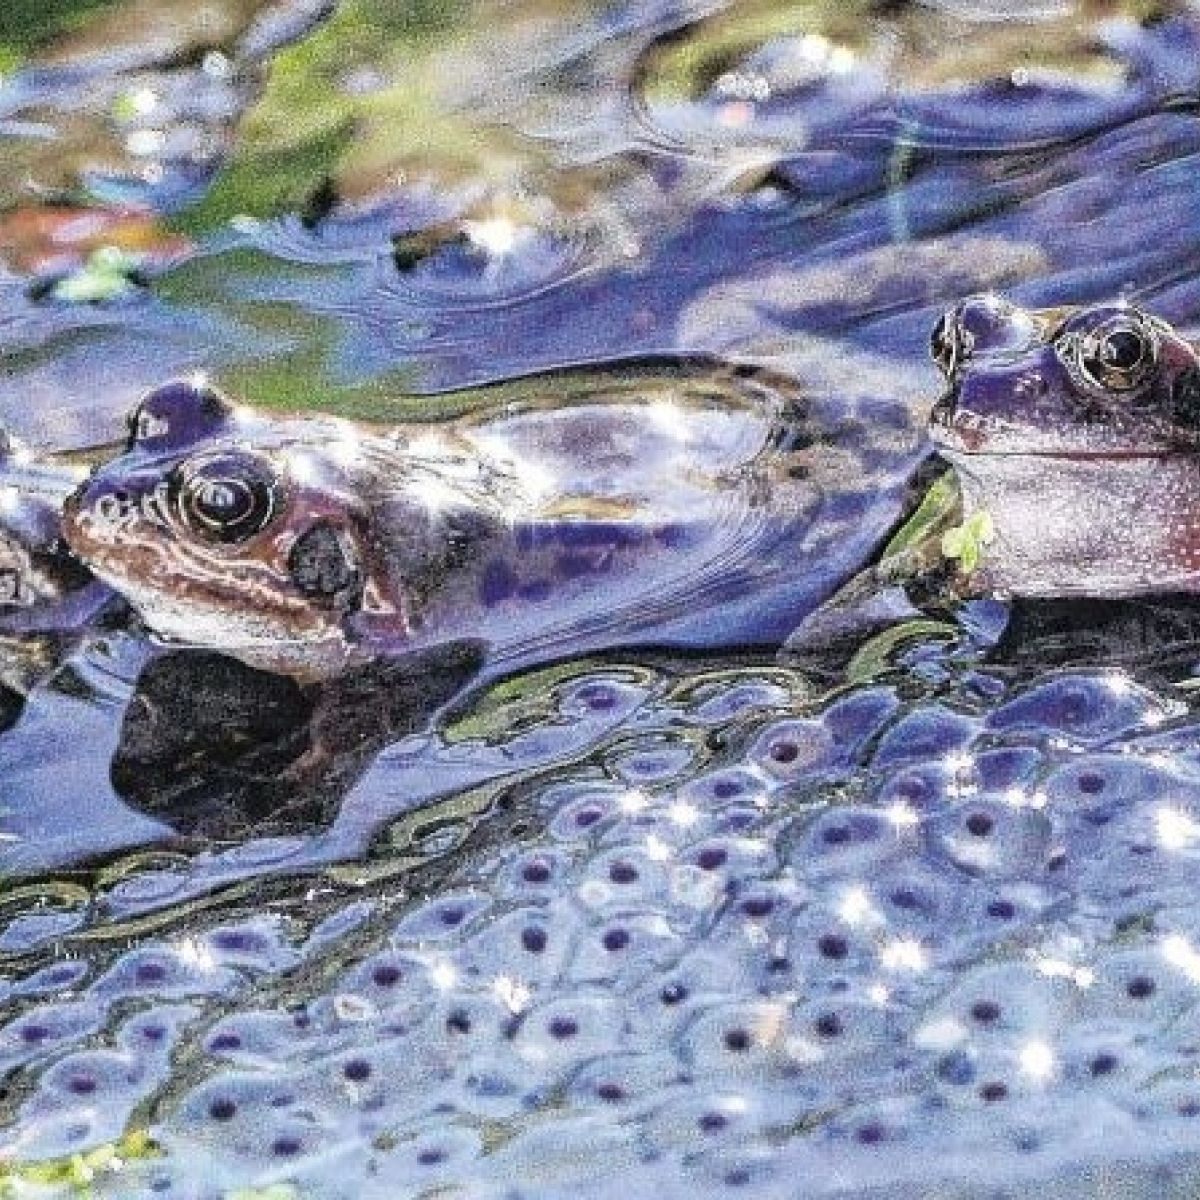 500 pairs of mating frogs under threat in Dublin's Phoenix Park